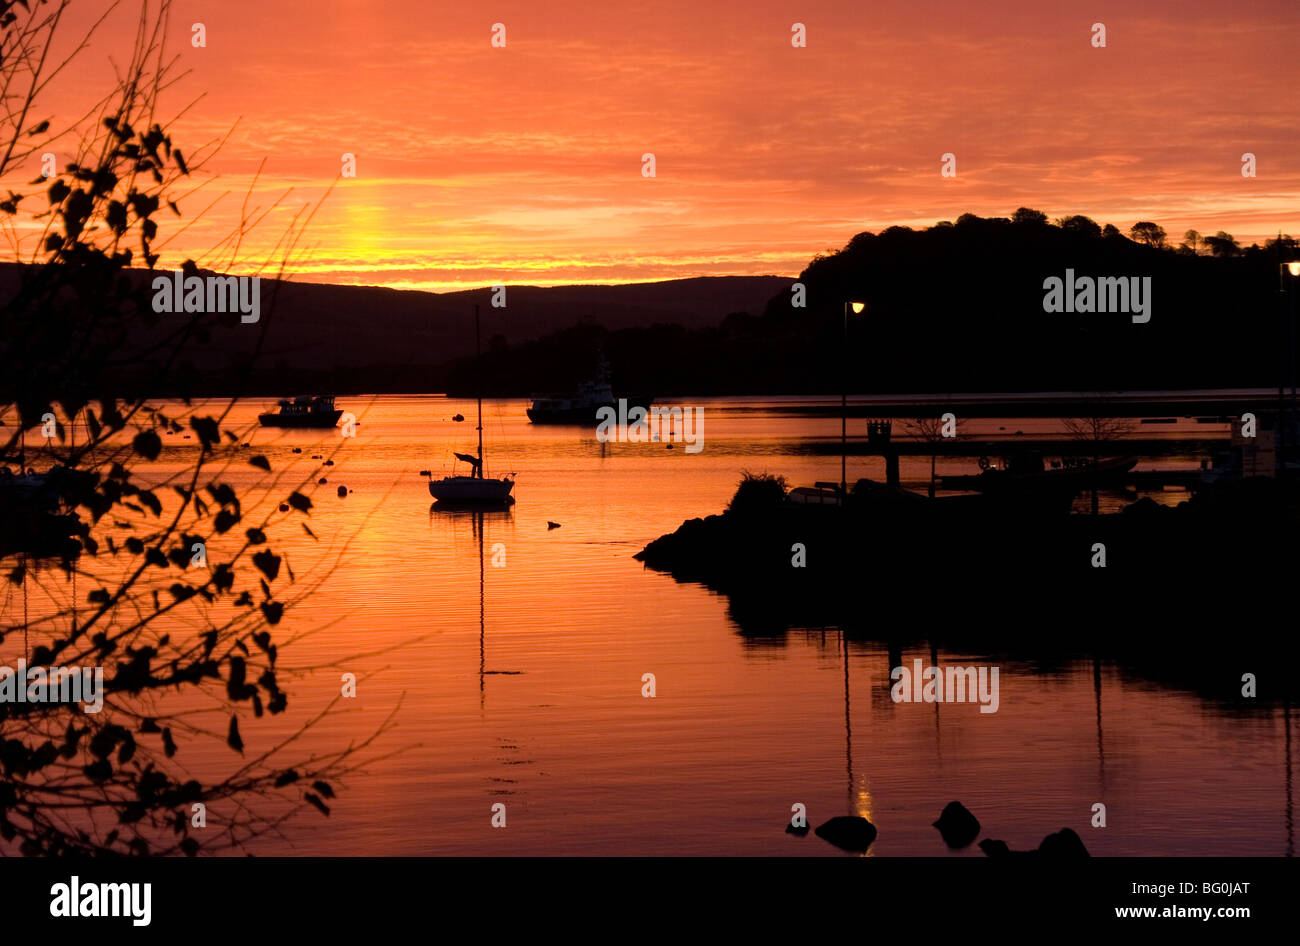 Sunrise over Tobermory Harbour and Calve Island in the Sound of Mull, Tobermory, Mull, Inner Hebrides, Scotland, - Stock Image